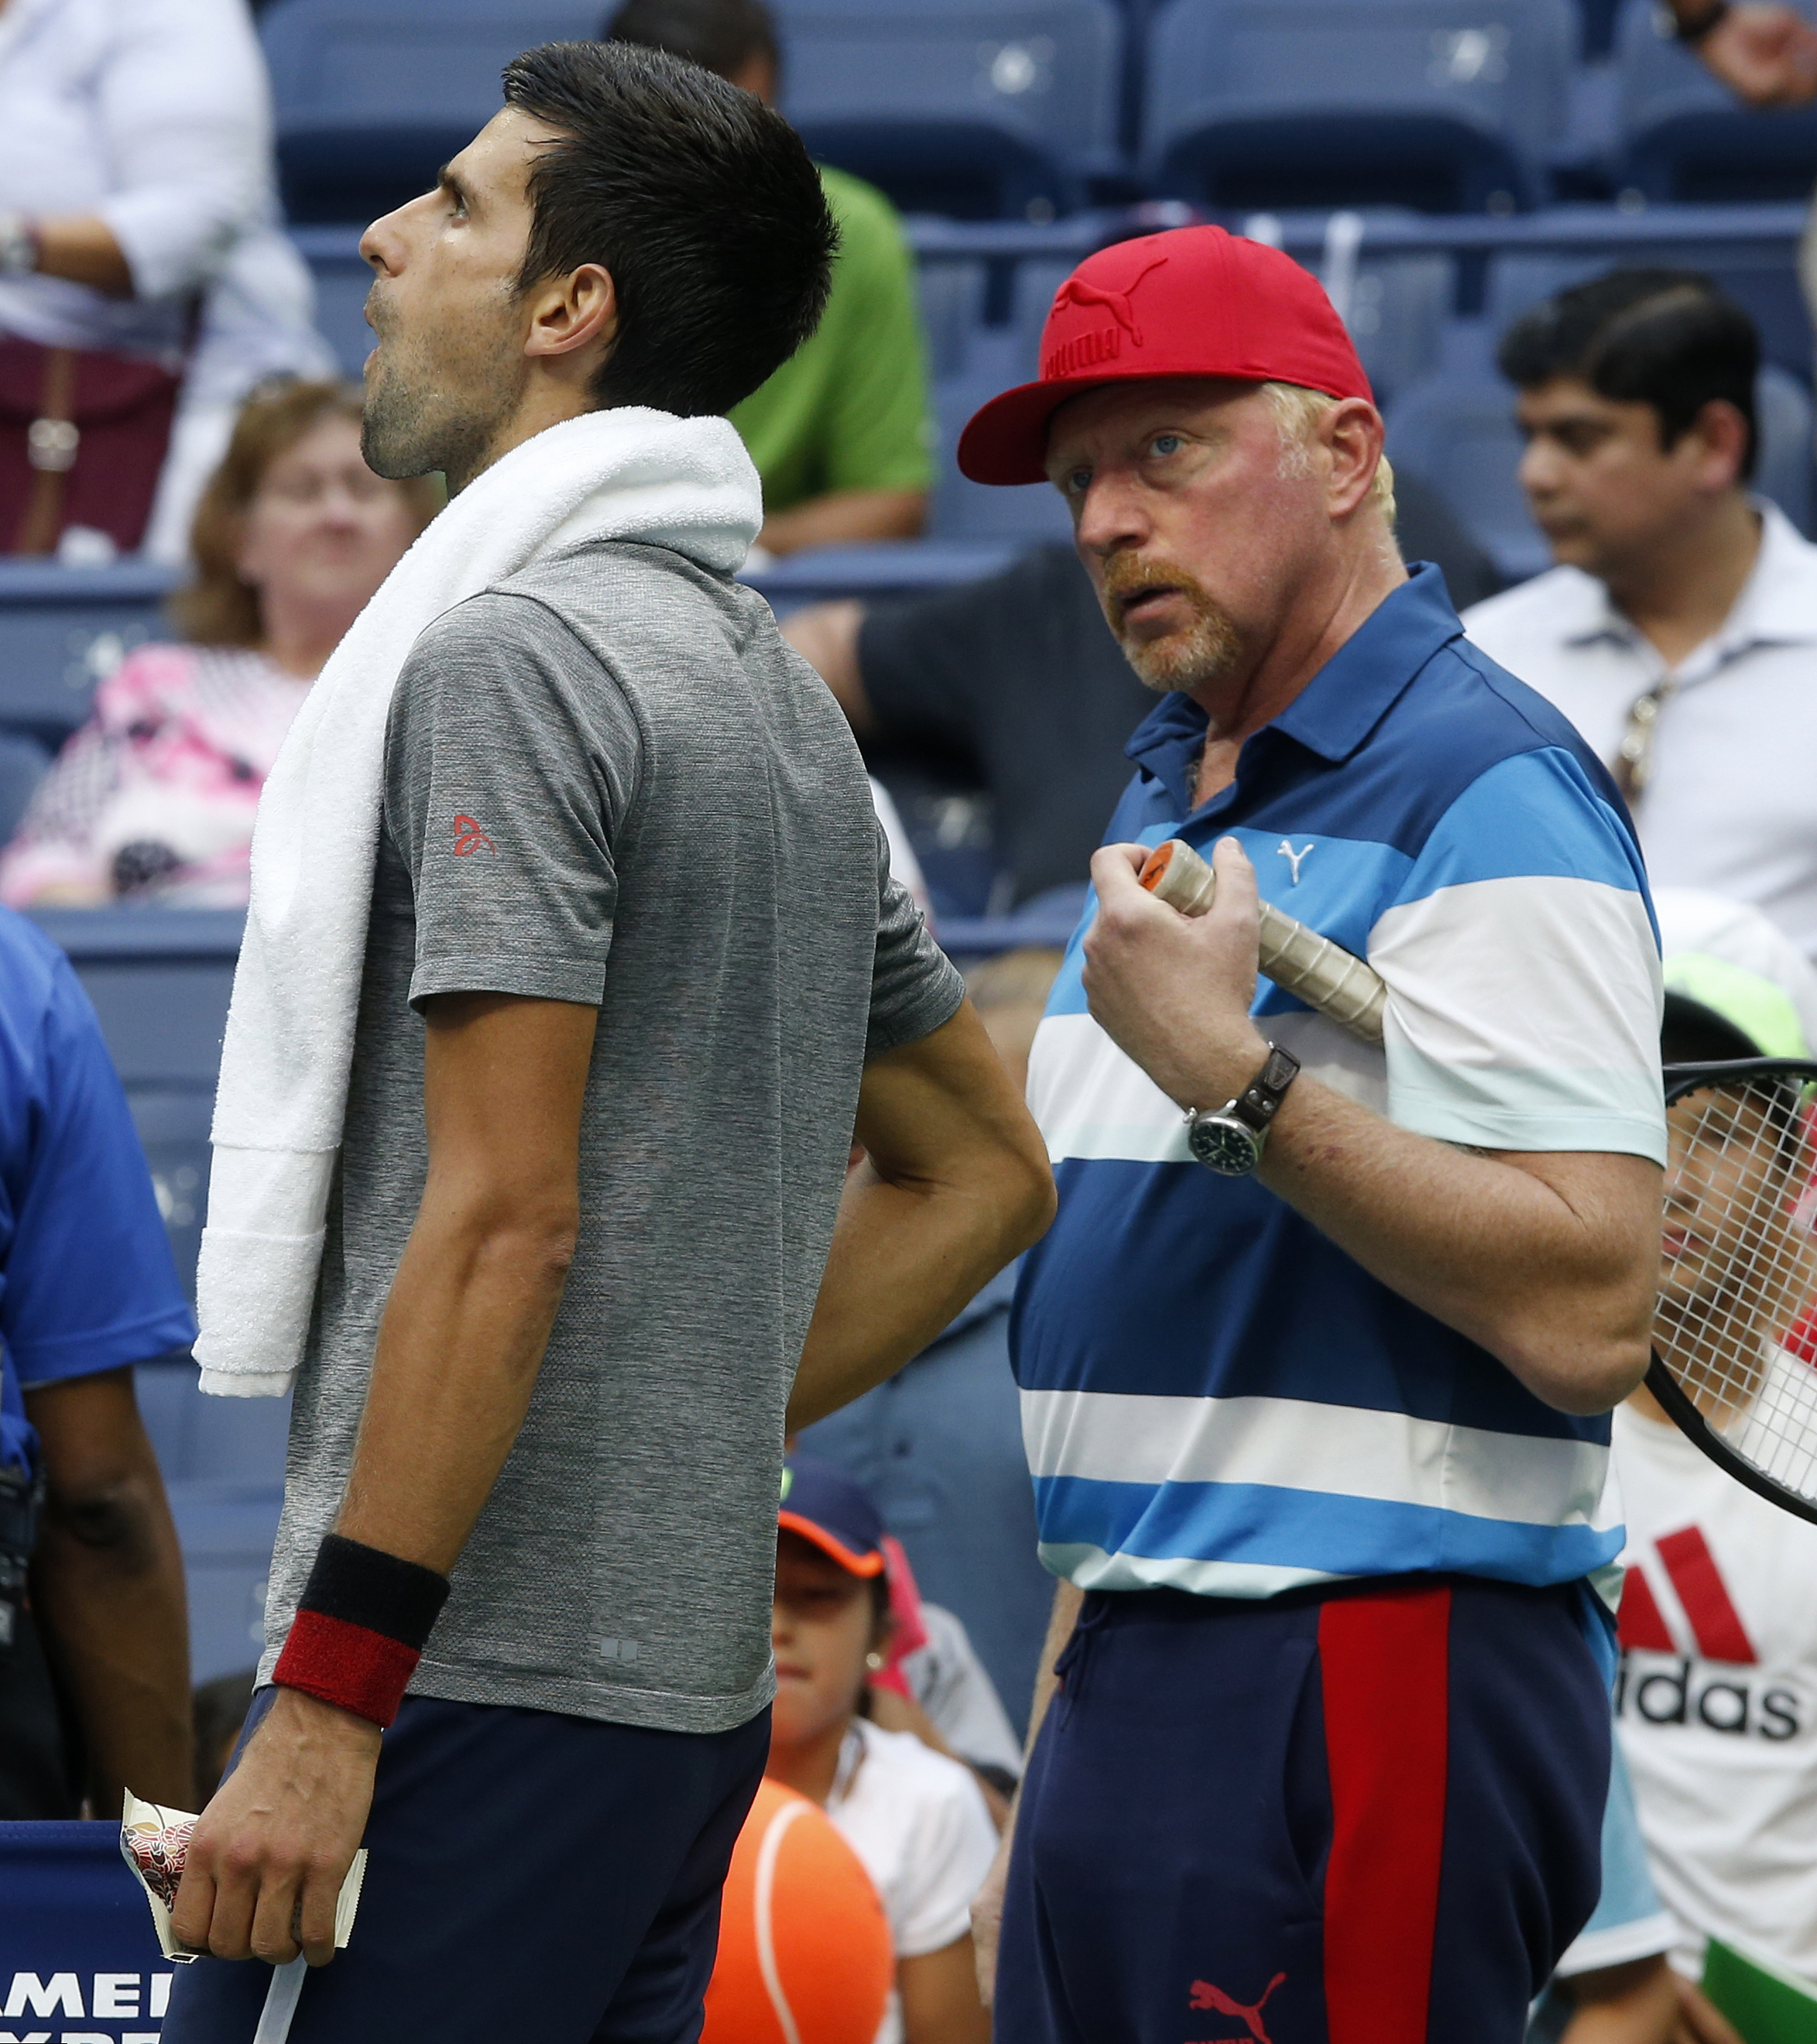 Novak Djokovic, of Serbia, left, talks with his coach Boris Becker, right, during a practice session after his opponent Mikhail Youzhny, of Russia, retired in the first set of their match during the third round of the U.S. Open tennis tournament, Friday,